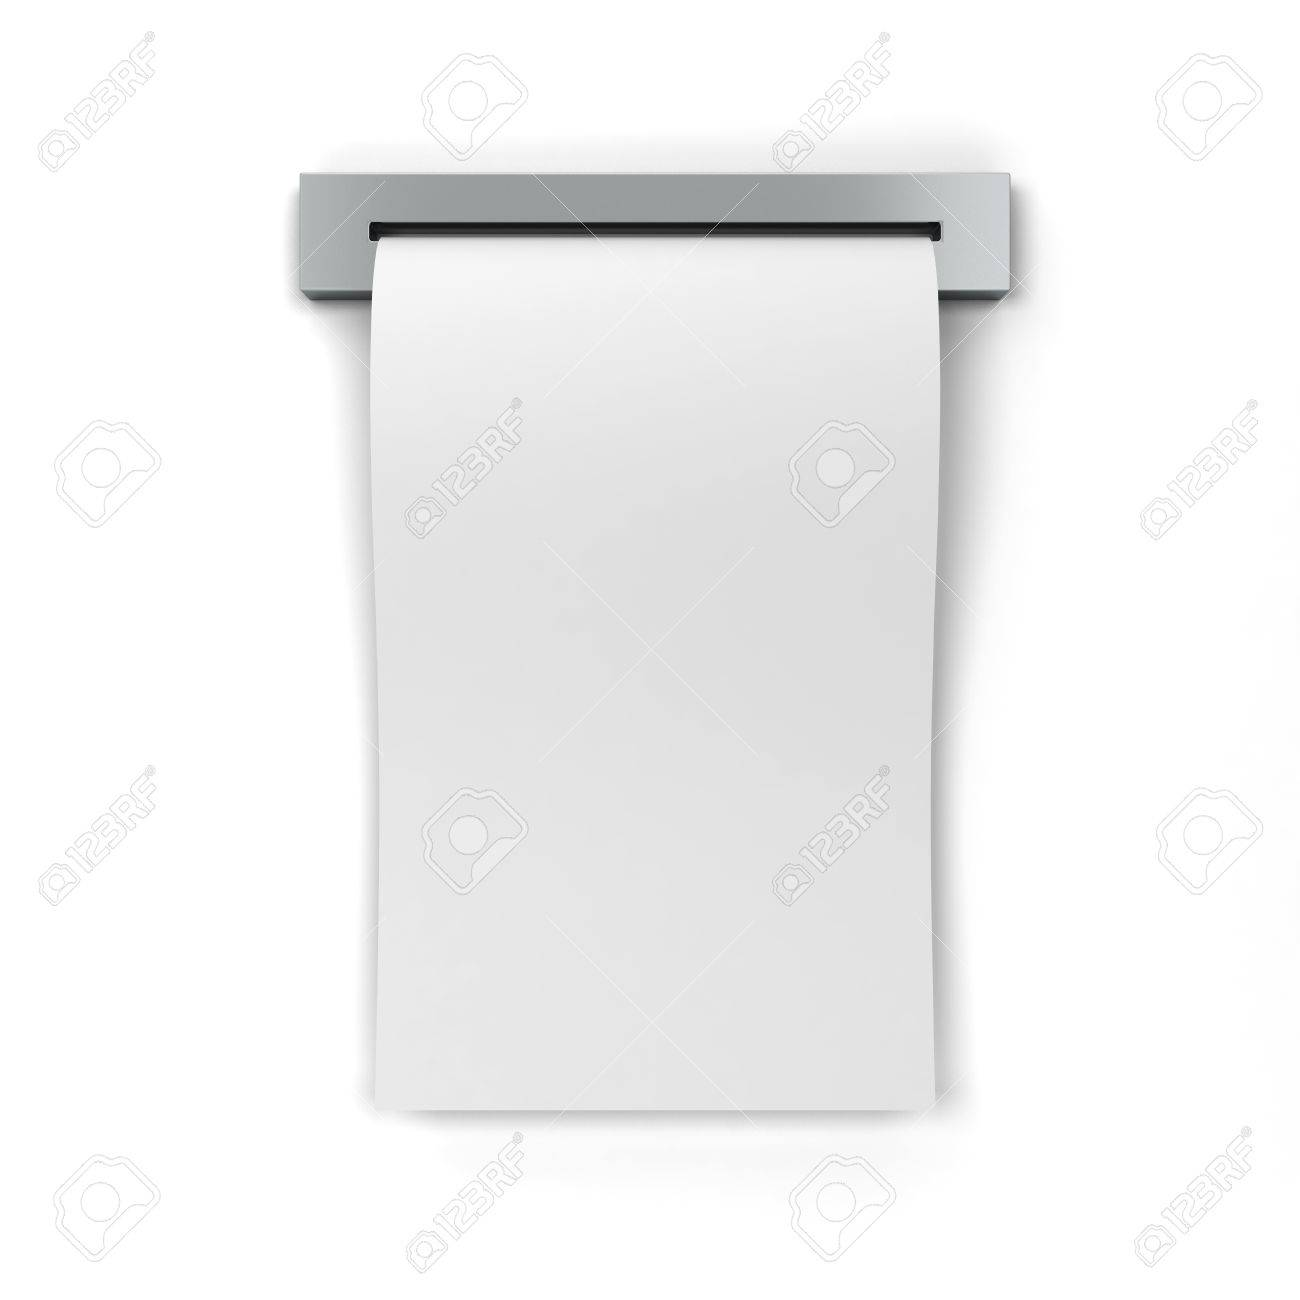 blank cash receipt 3d illustration isolated on white background